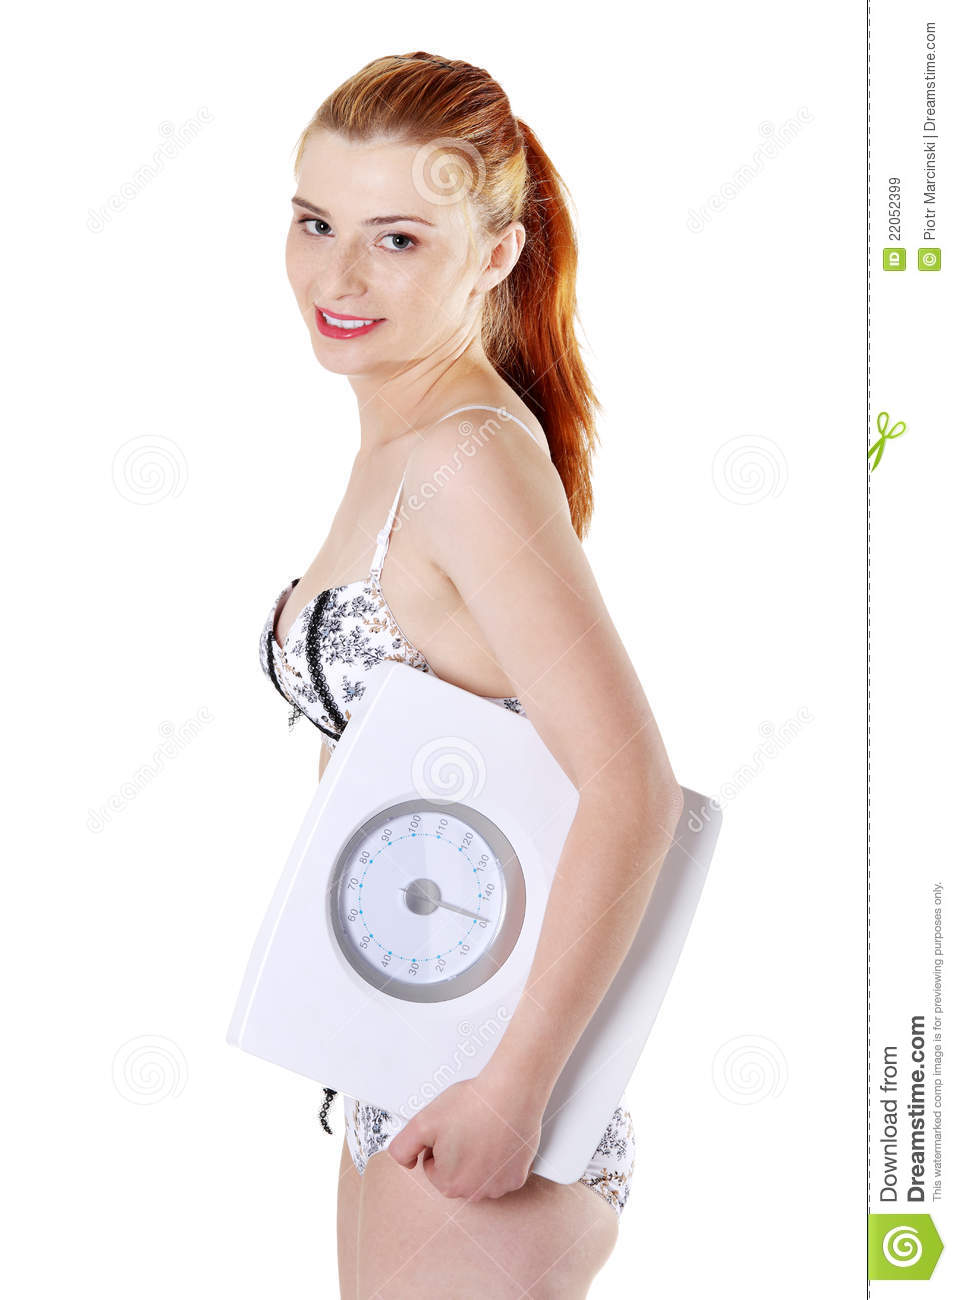 young girl underware Young girl in underwear holding a scales